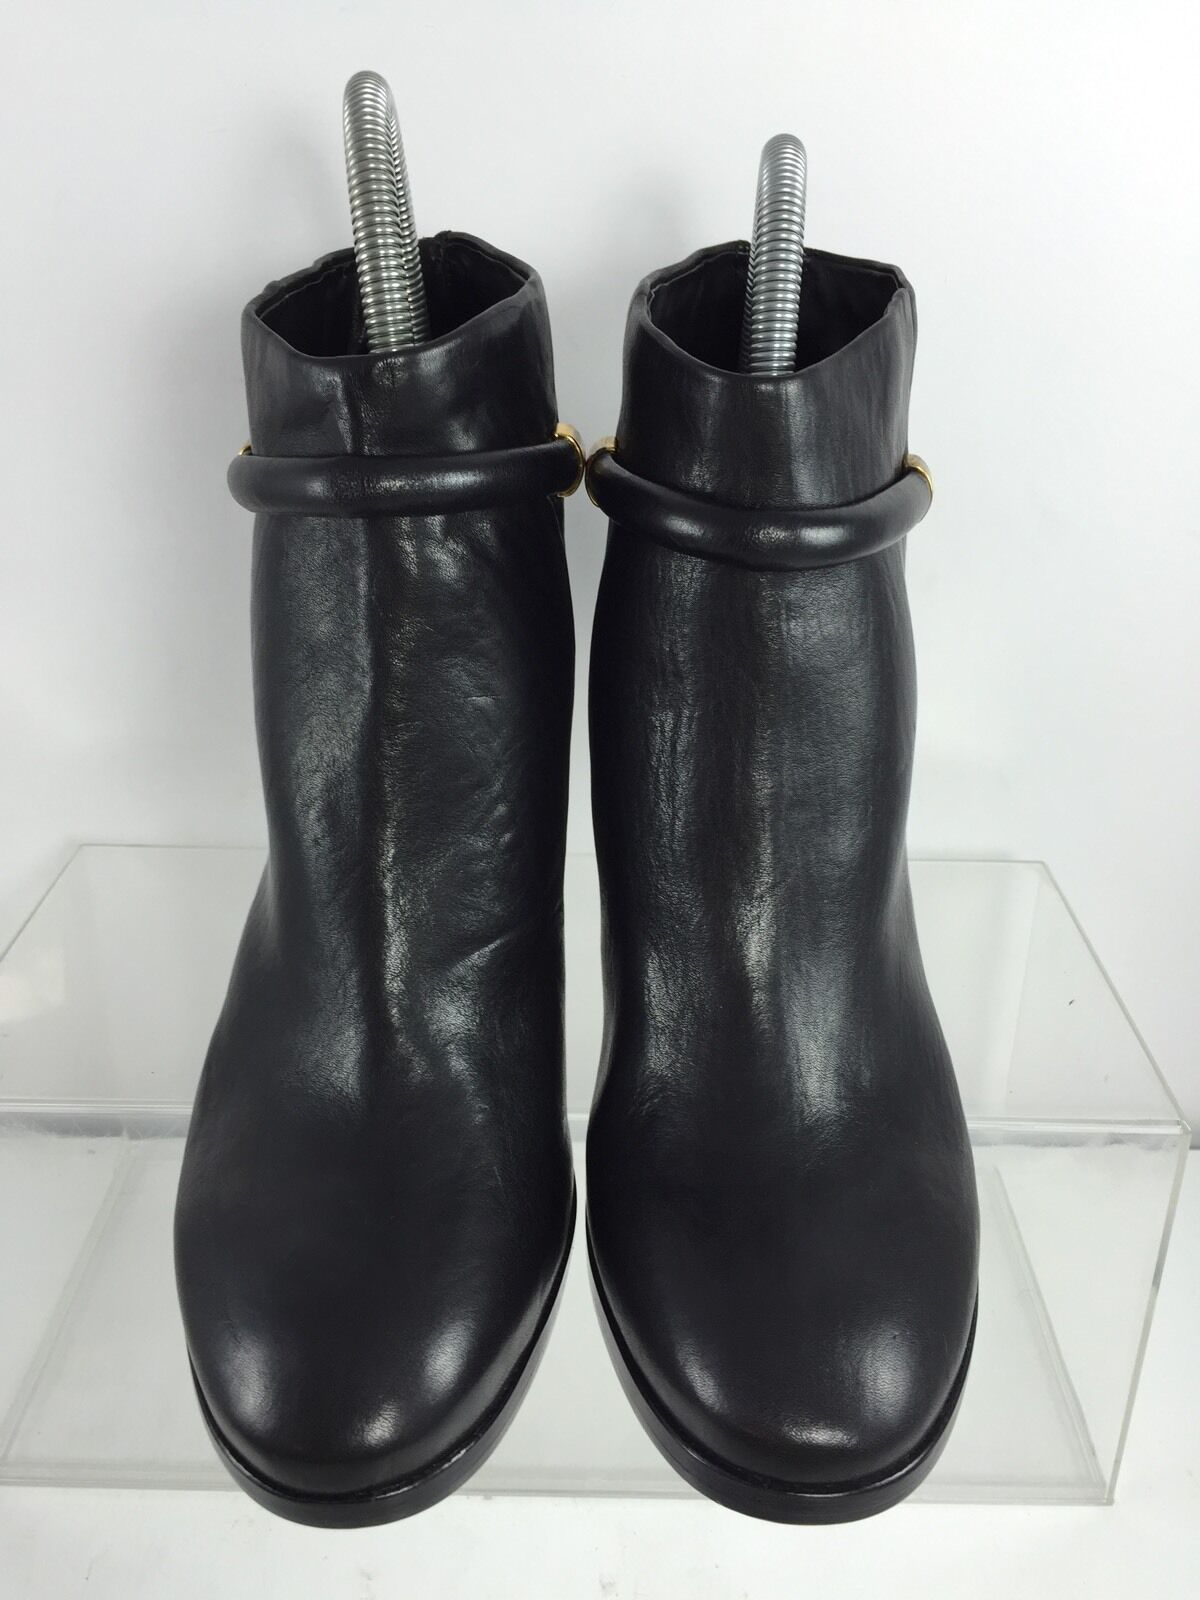 Aerin Womens Black Leather Ankle Boots Boots Boots 10 M f81bb2